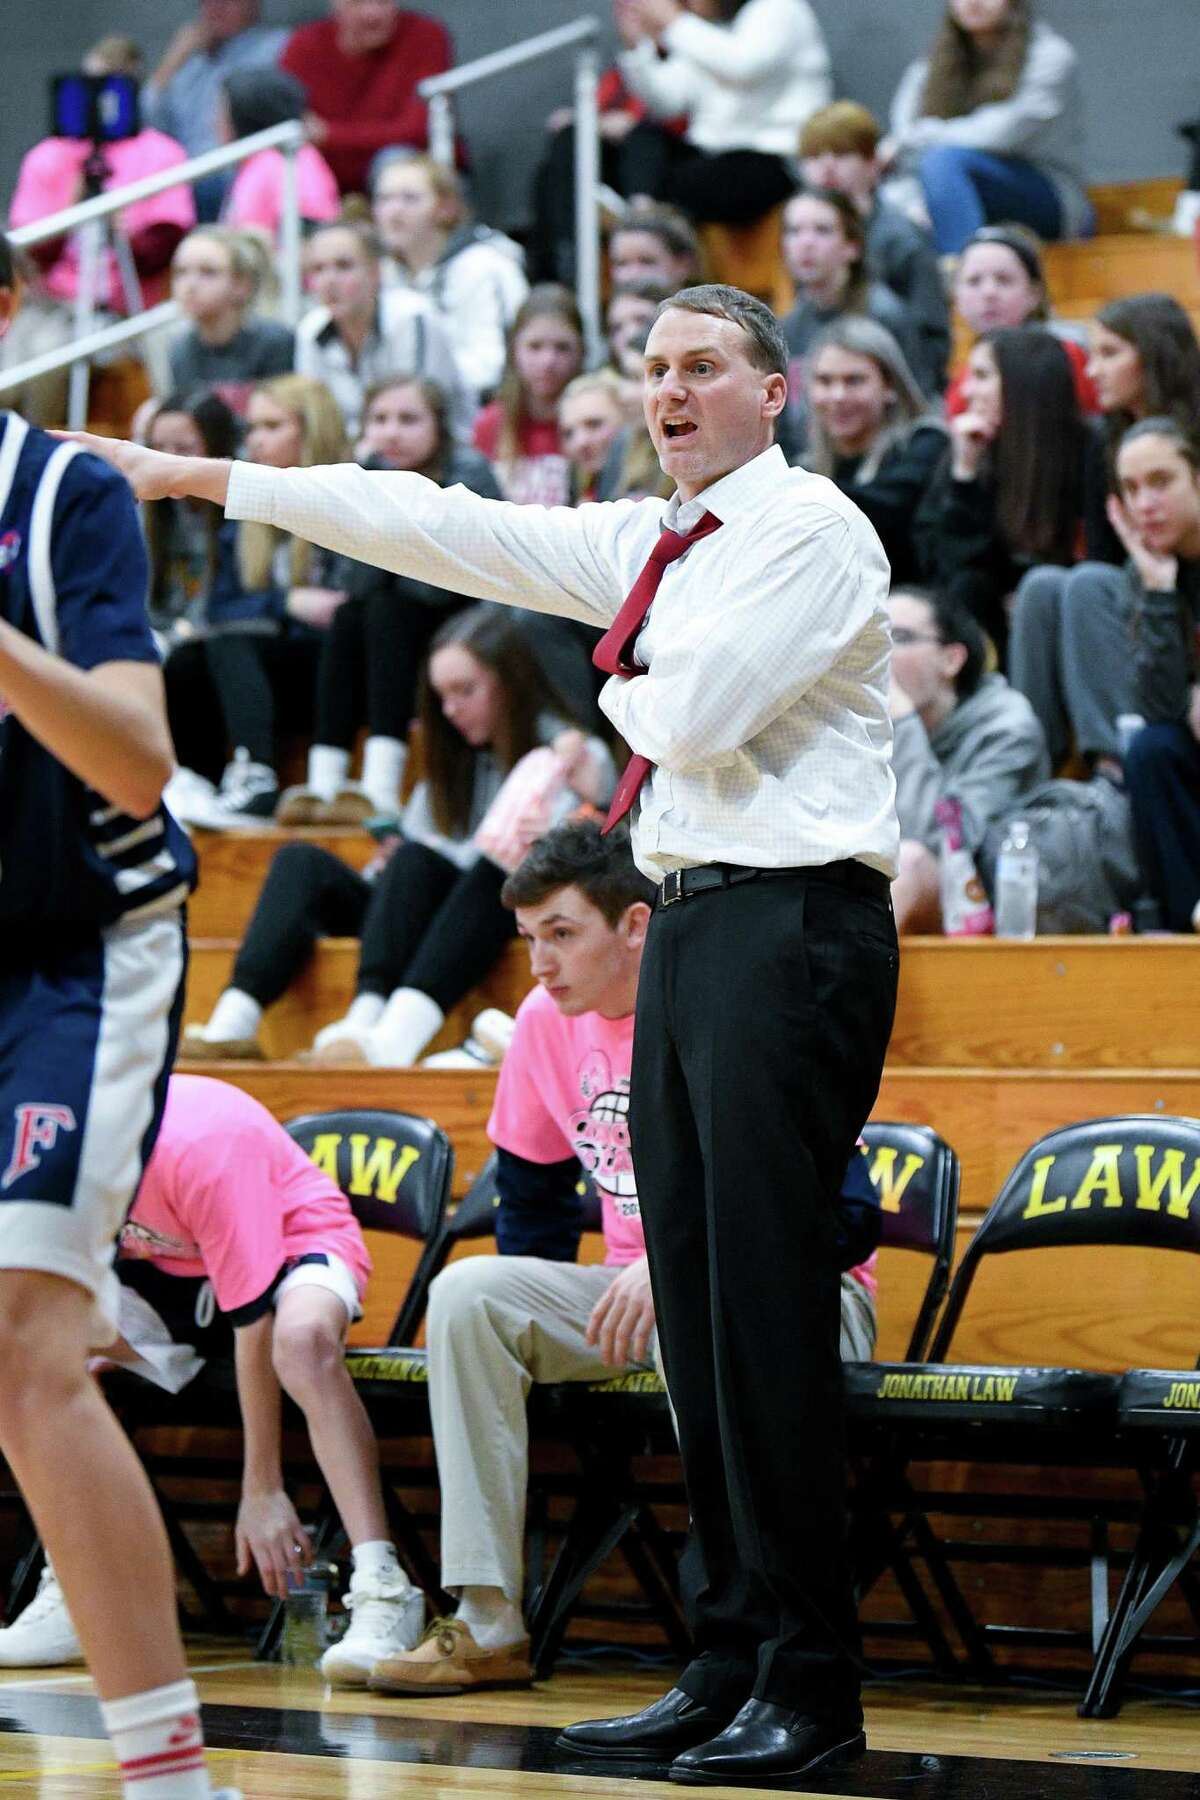 Foran boys basketball coach Ian Kirkpatrick believes letting players take breaks while wearing masks is the way to go.